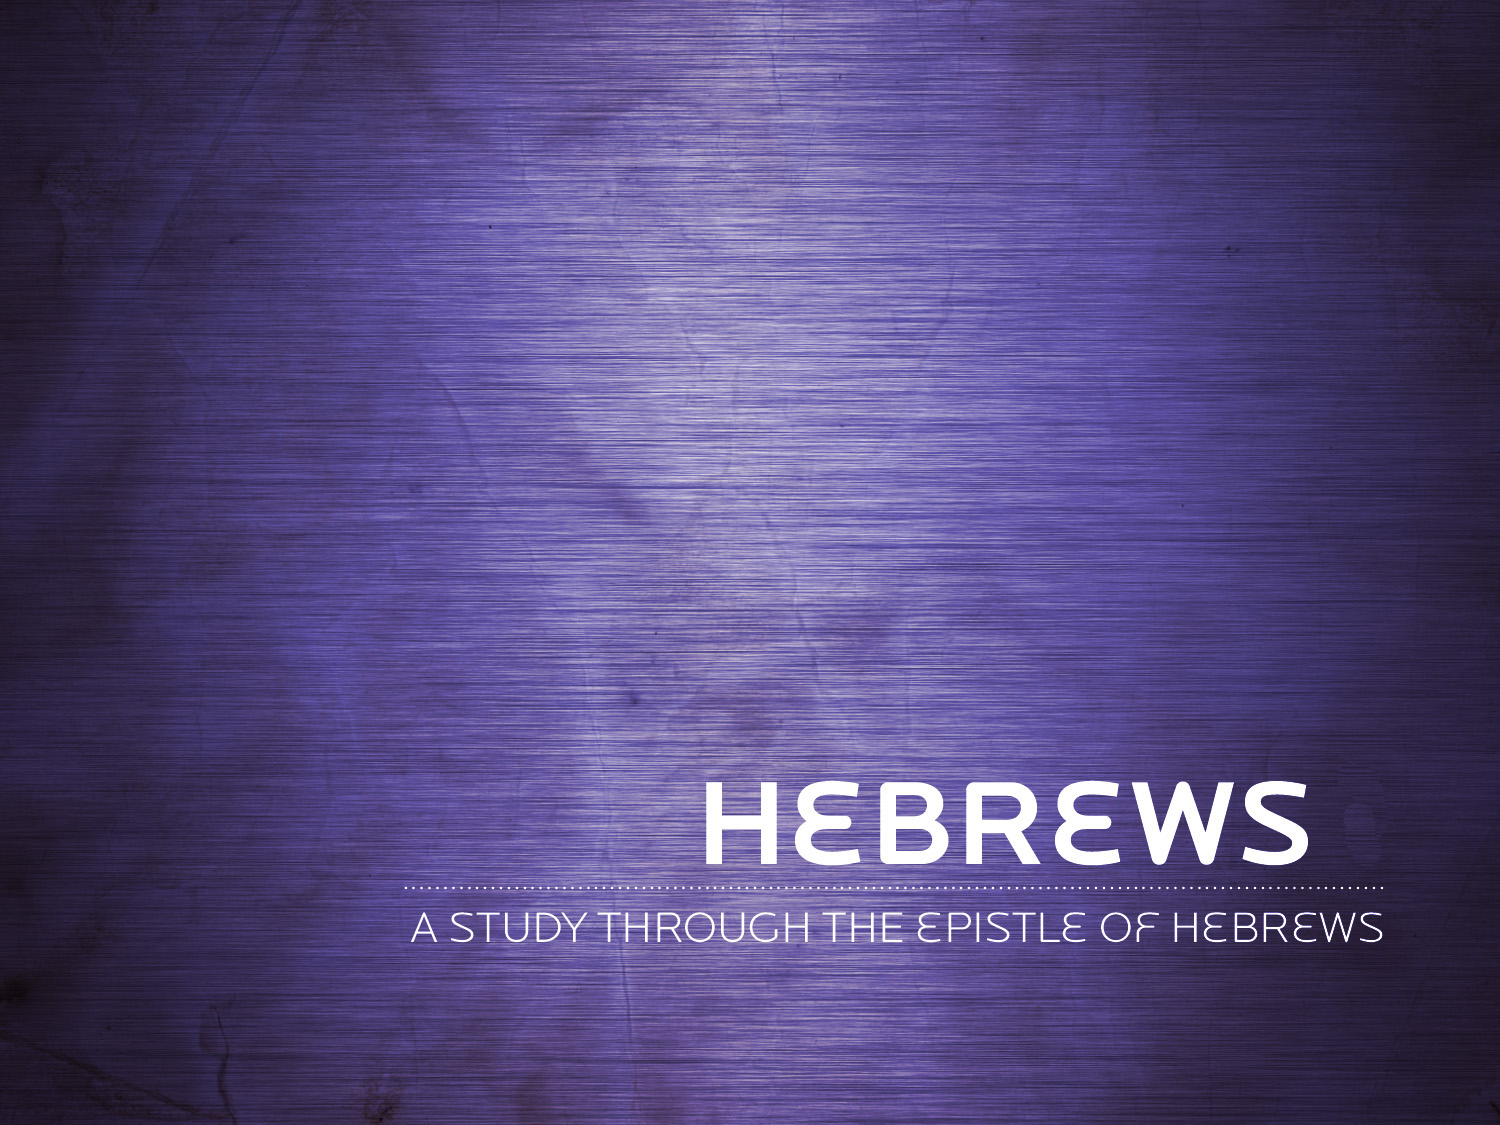 hebrews-1_t.jpg